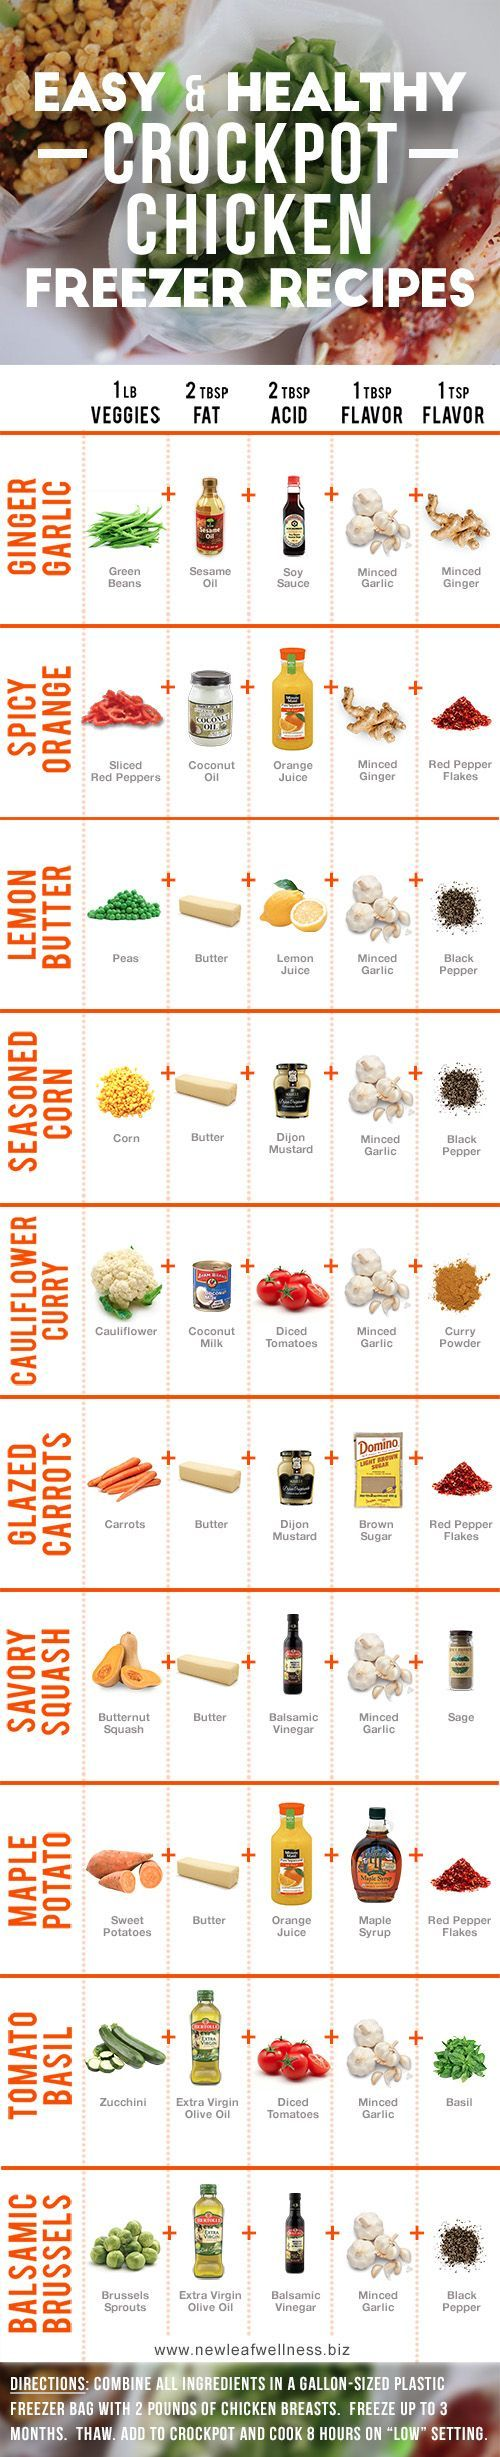 Easy Healthy Crockpot Chicken Freezer Recipes | The WHOot